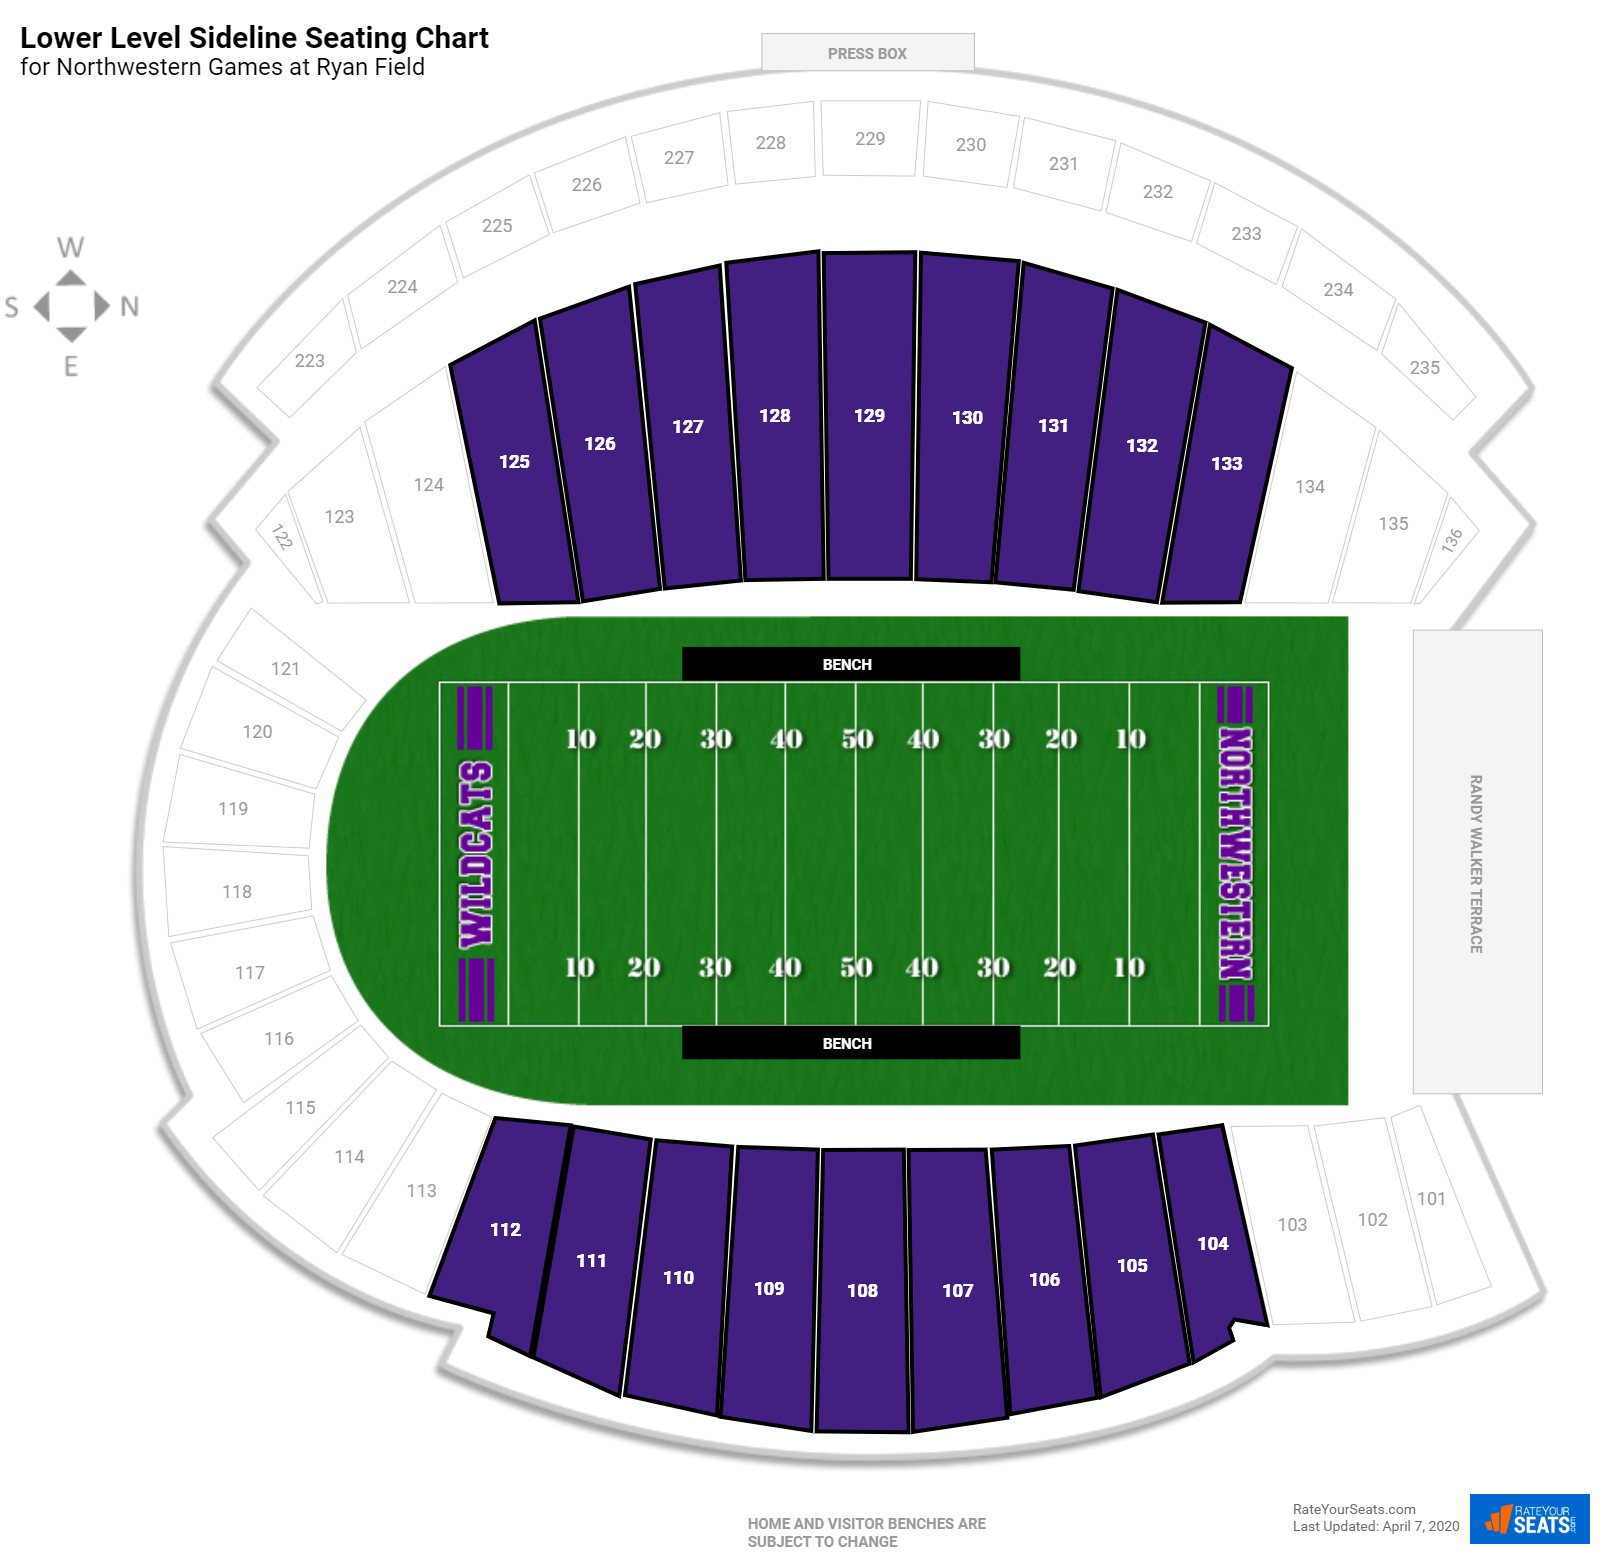 Ryan Field Lower Level Sideline seating chart